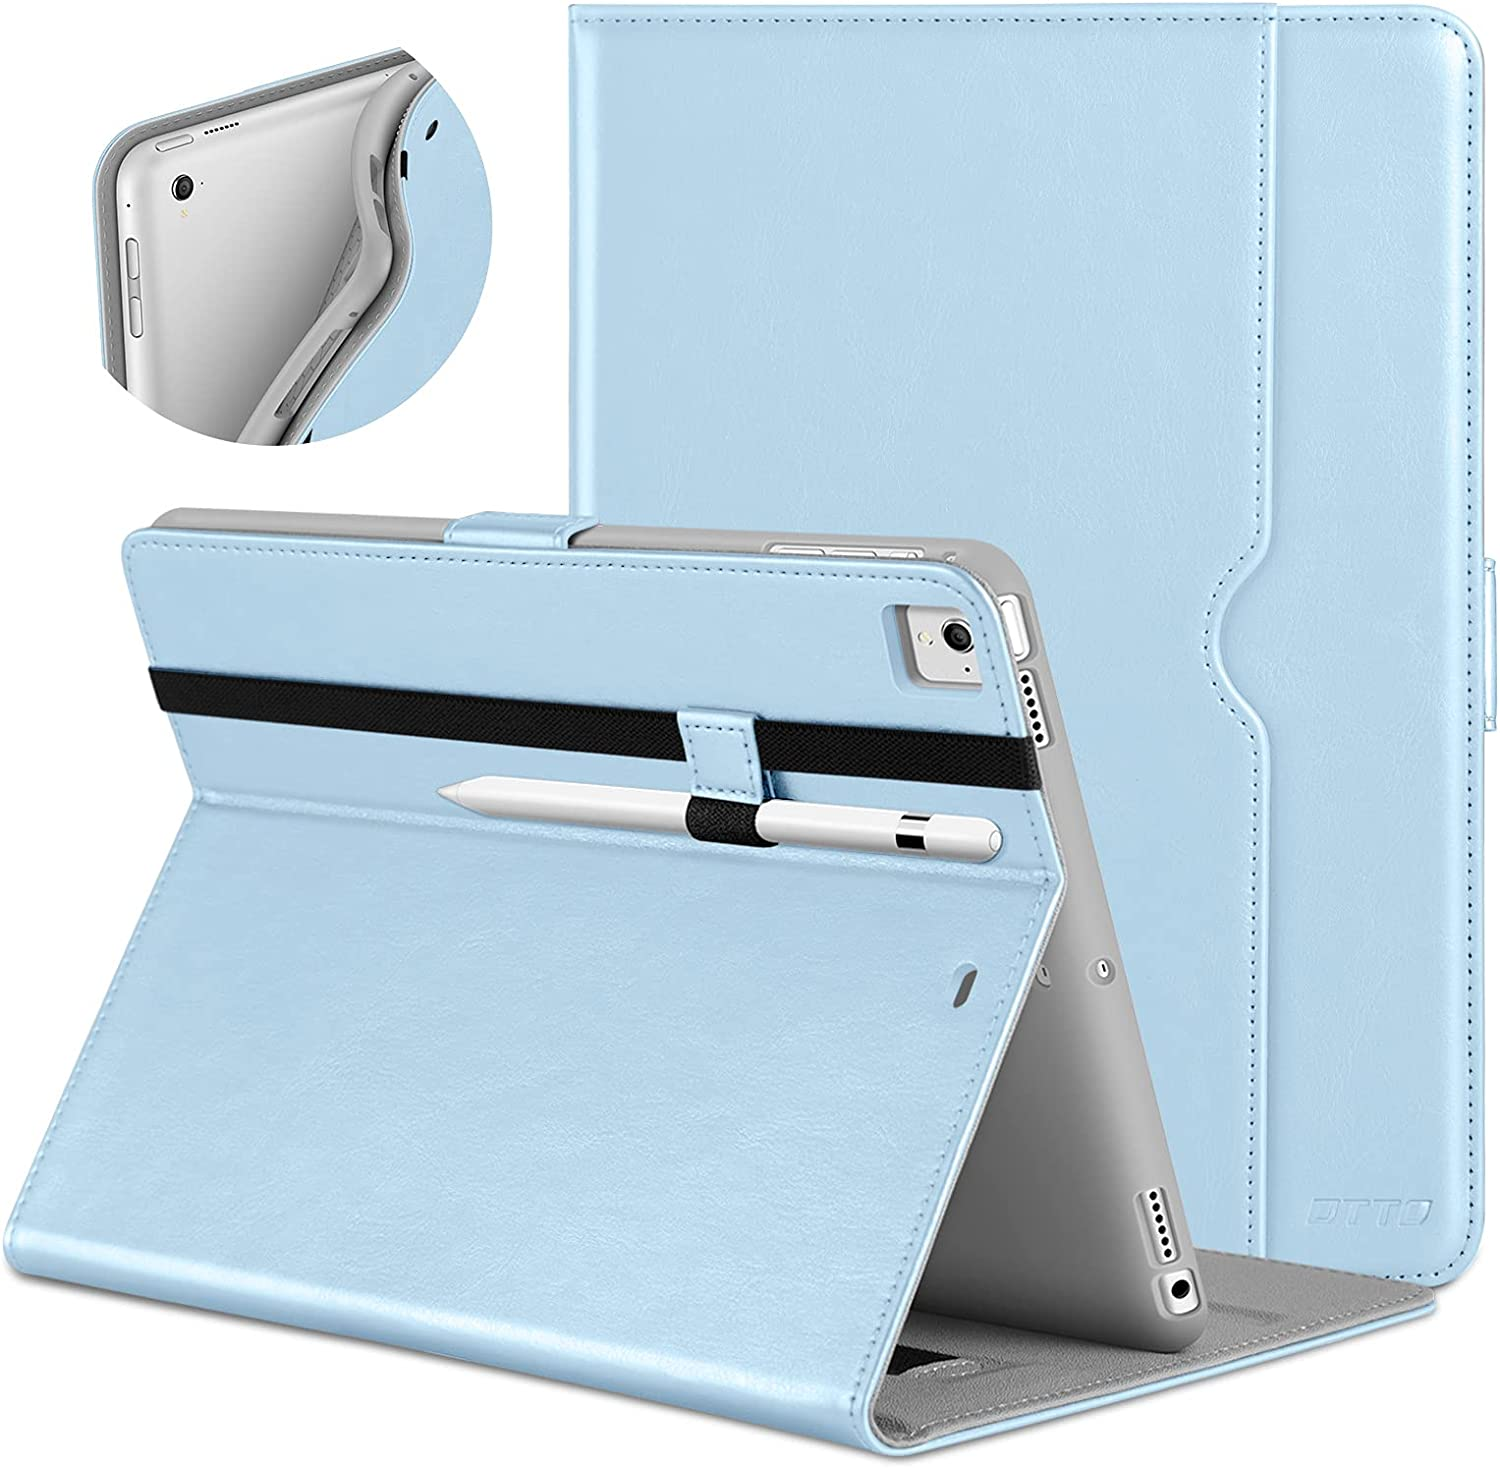 DTTO New iPad 9.7 Inch 5th/6th Generation 2018/2017 Case with Apple Pencil Holder, Premium Leather Folio Stand Cover Case for Apple iPad 9.7 inch, Also Fit iPad Pro 9.7/Air 2/Air - Ice Blue